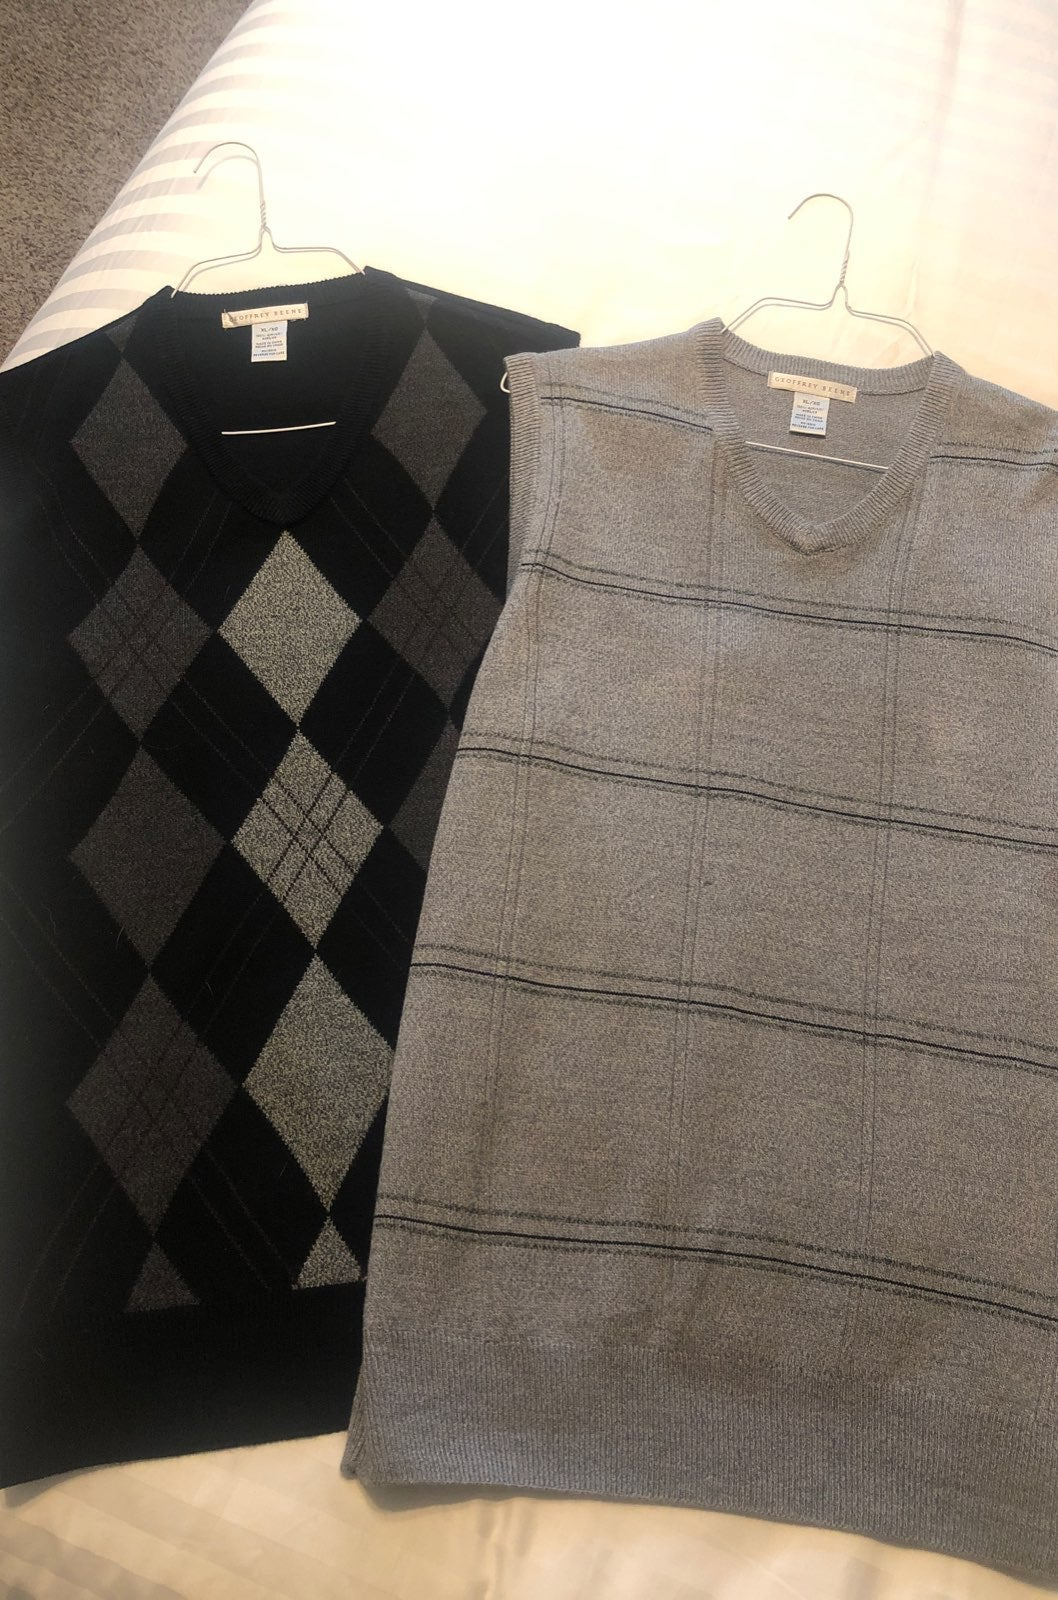 Mens XL sweater vests